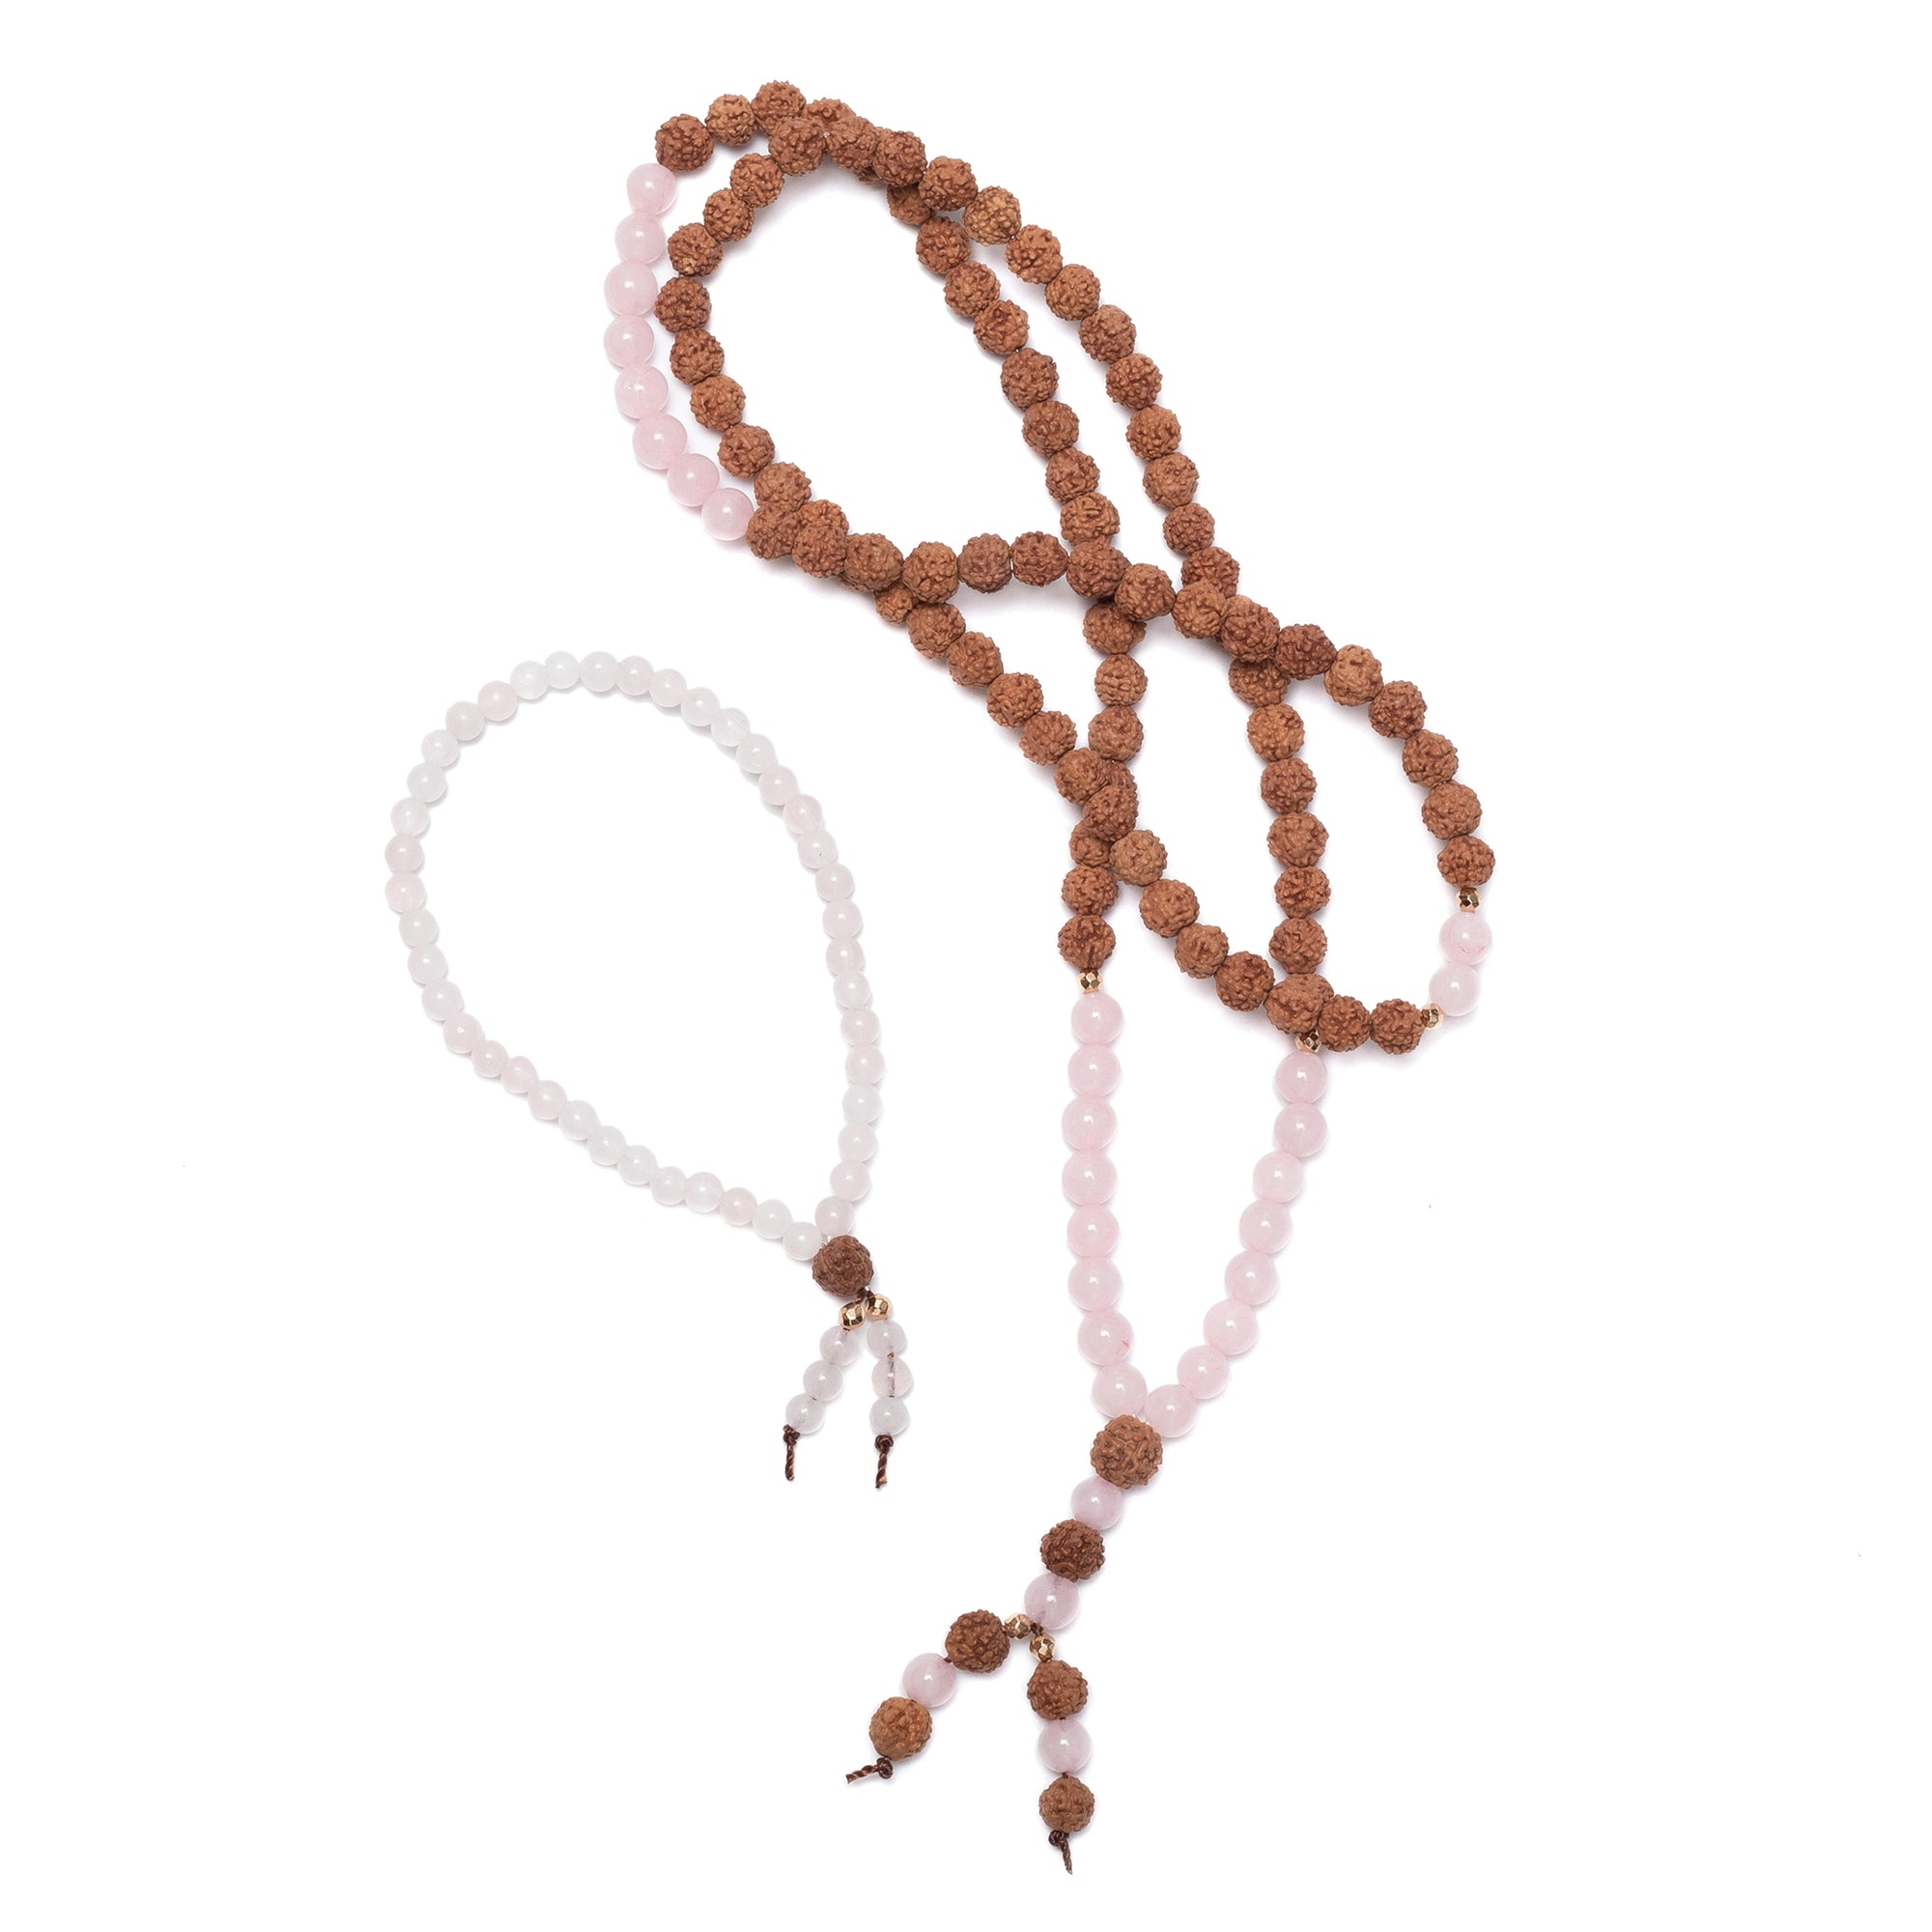 Super Power Pack: Mala Necklace and Bracelet Set of 7